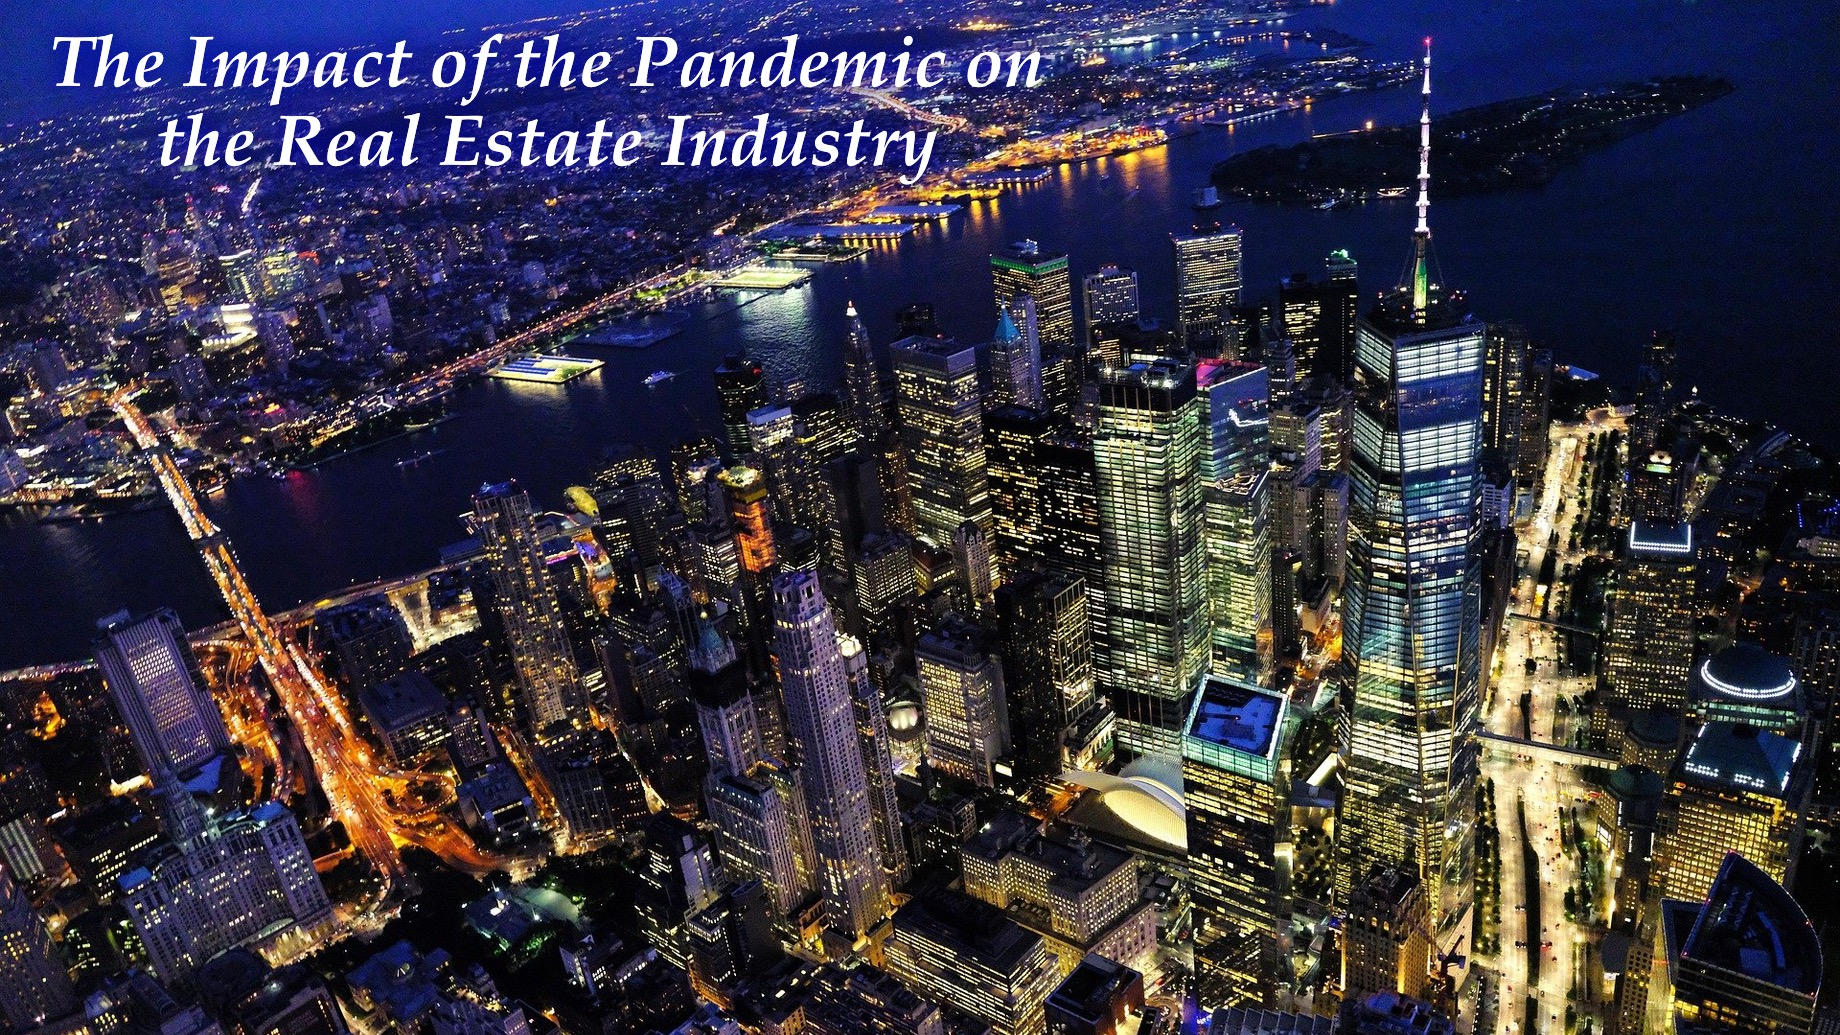 The Impact of the Pandemic on the Real Estate Industry